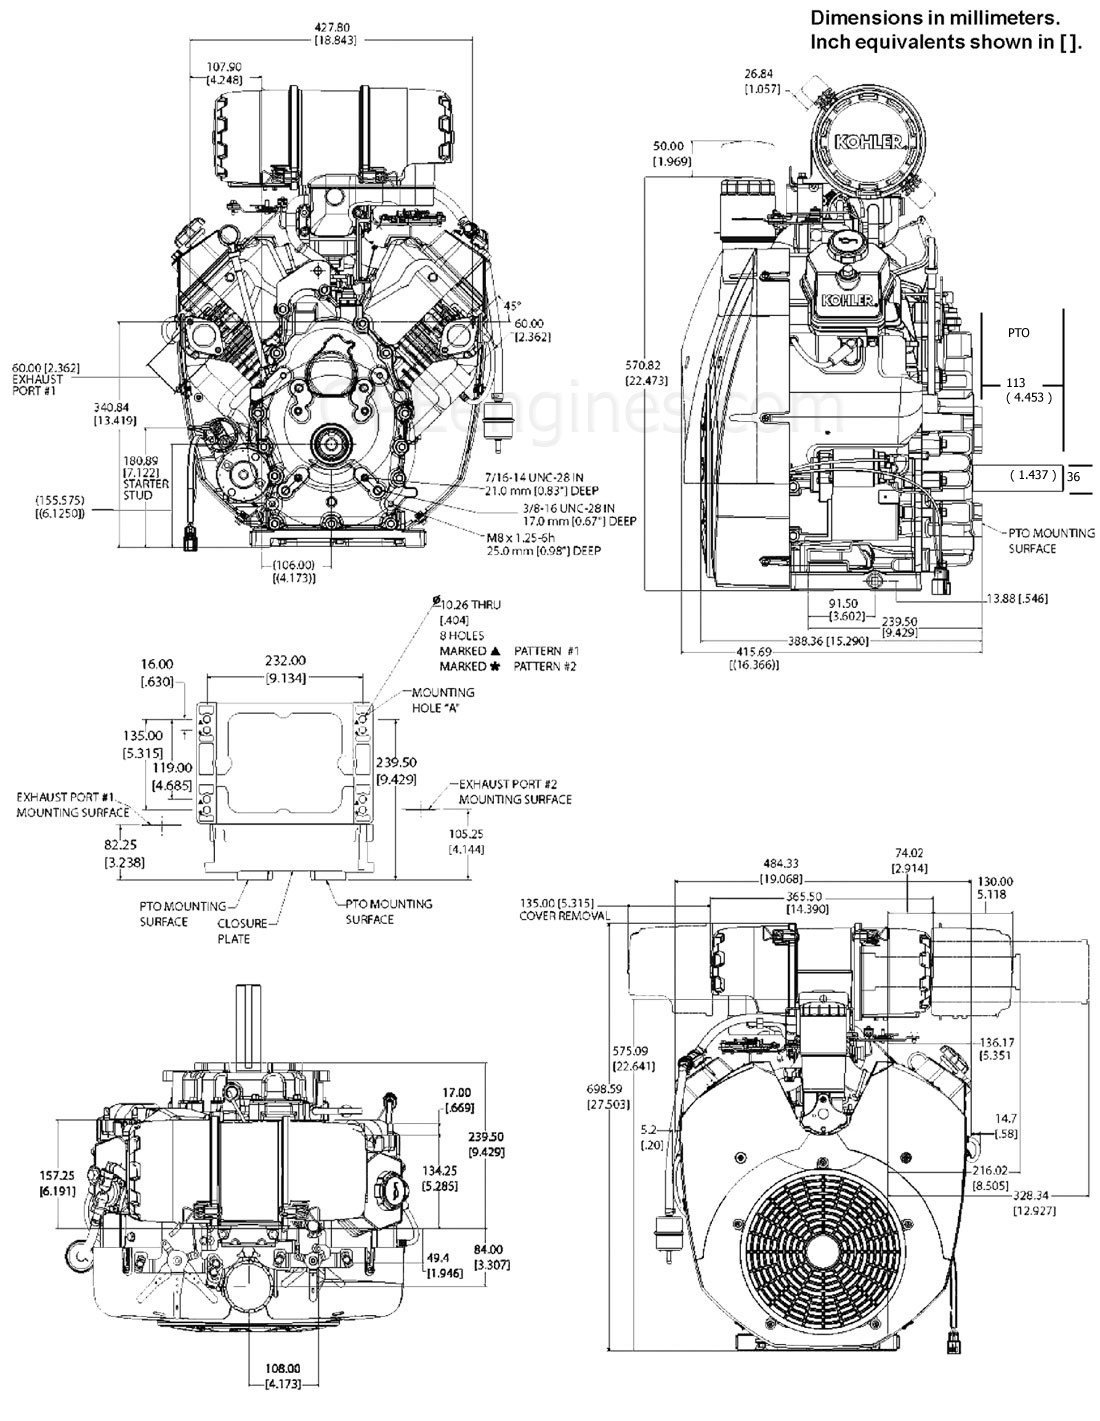 ch940 ch960 ch980 ch1000 drawings   kohler engines and kohler engine parts store  genuine kohler